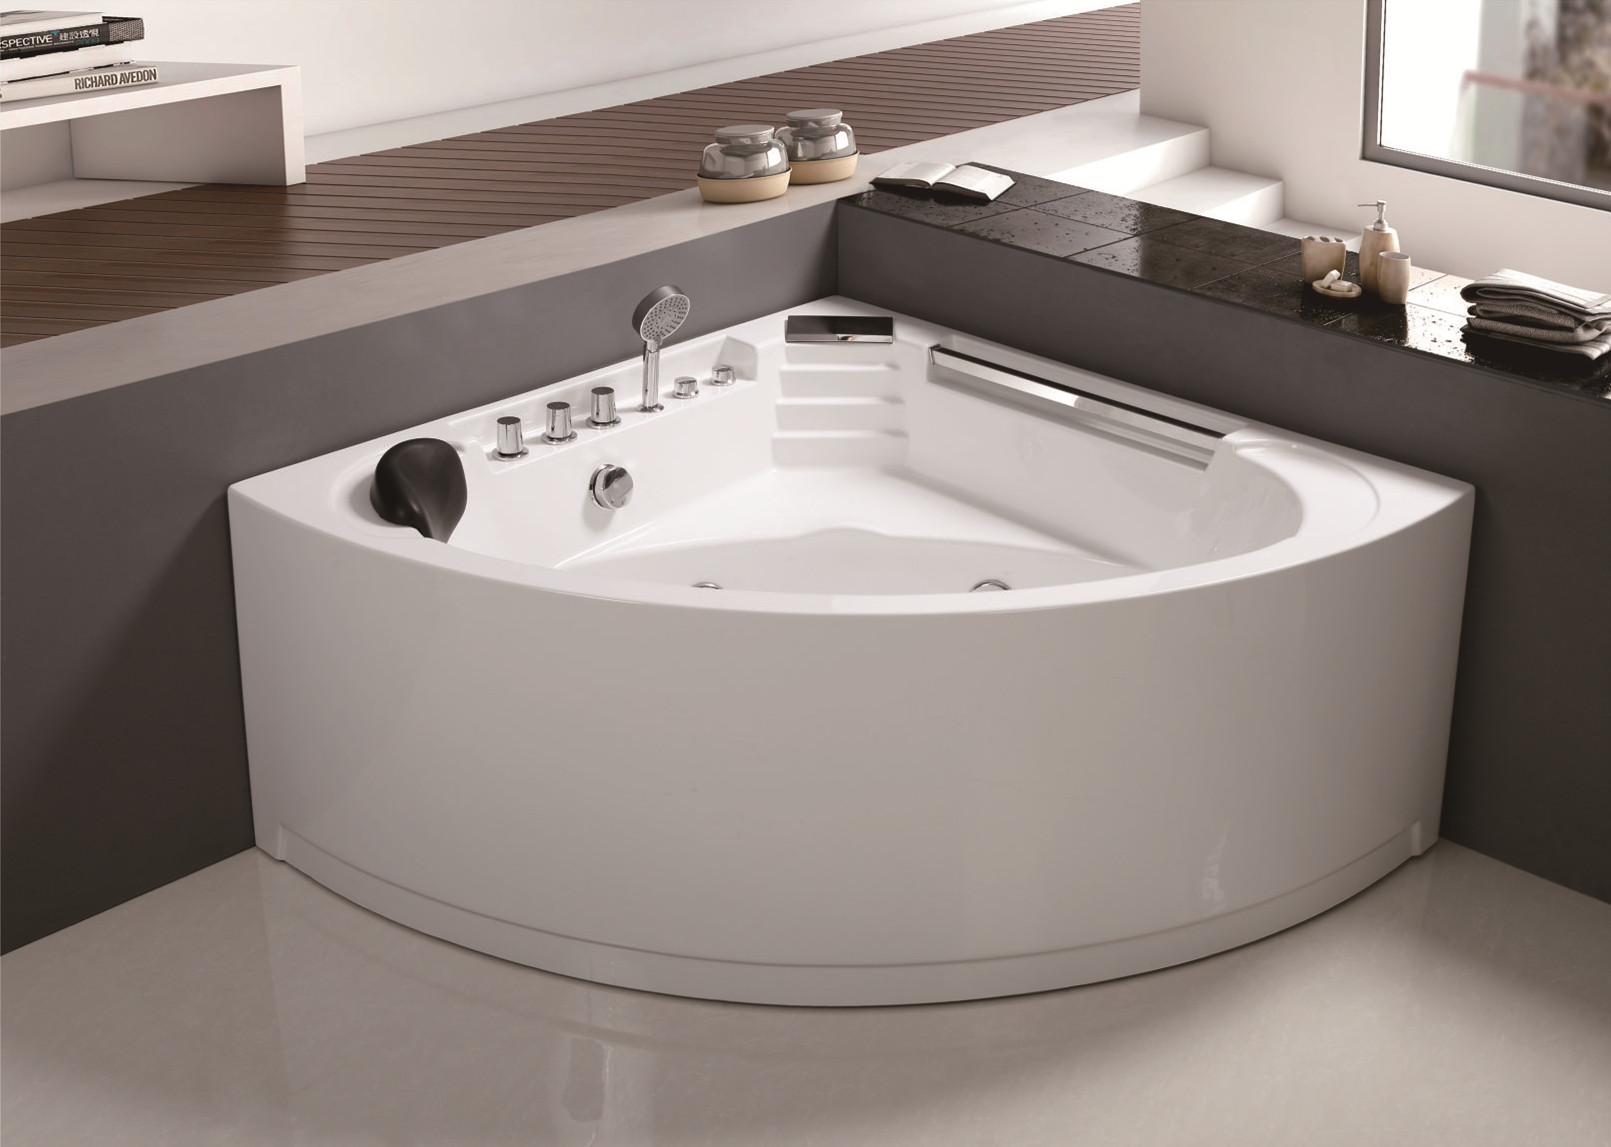 C-410 Corner Luxury Design Sector Deep Acrylic  Jetted Bathroom Bathtub for Sale with Cheap Price.jpg